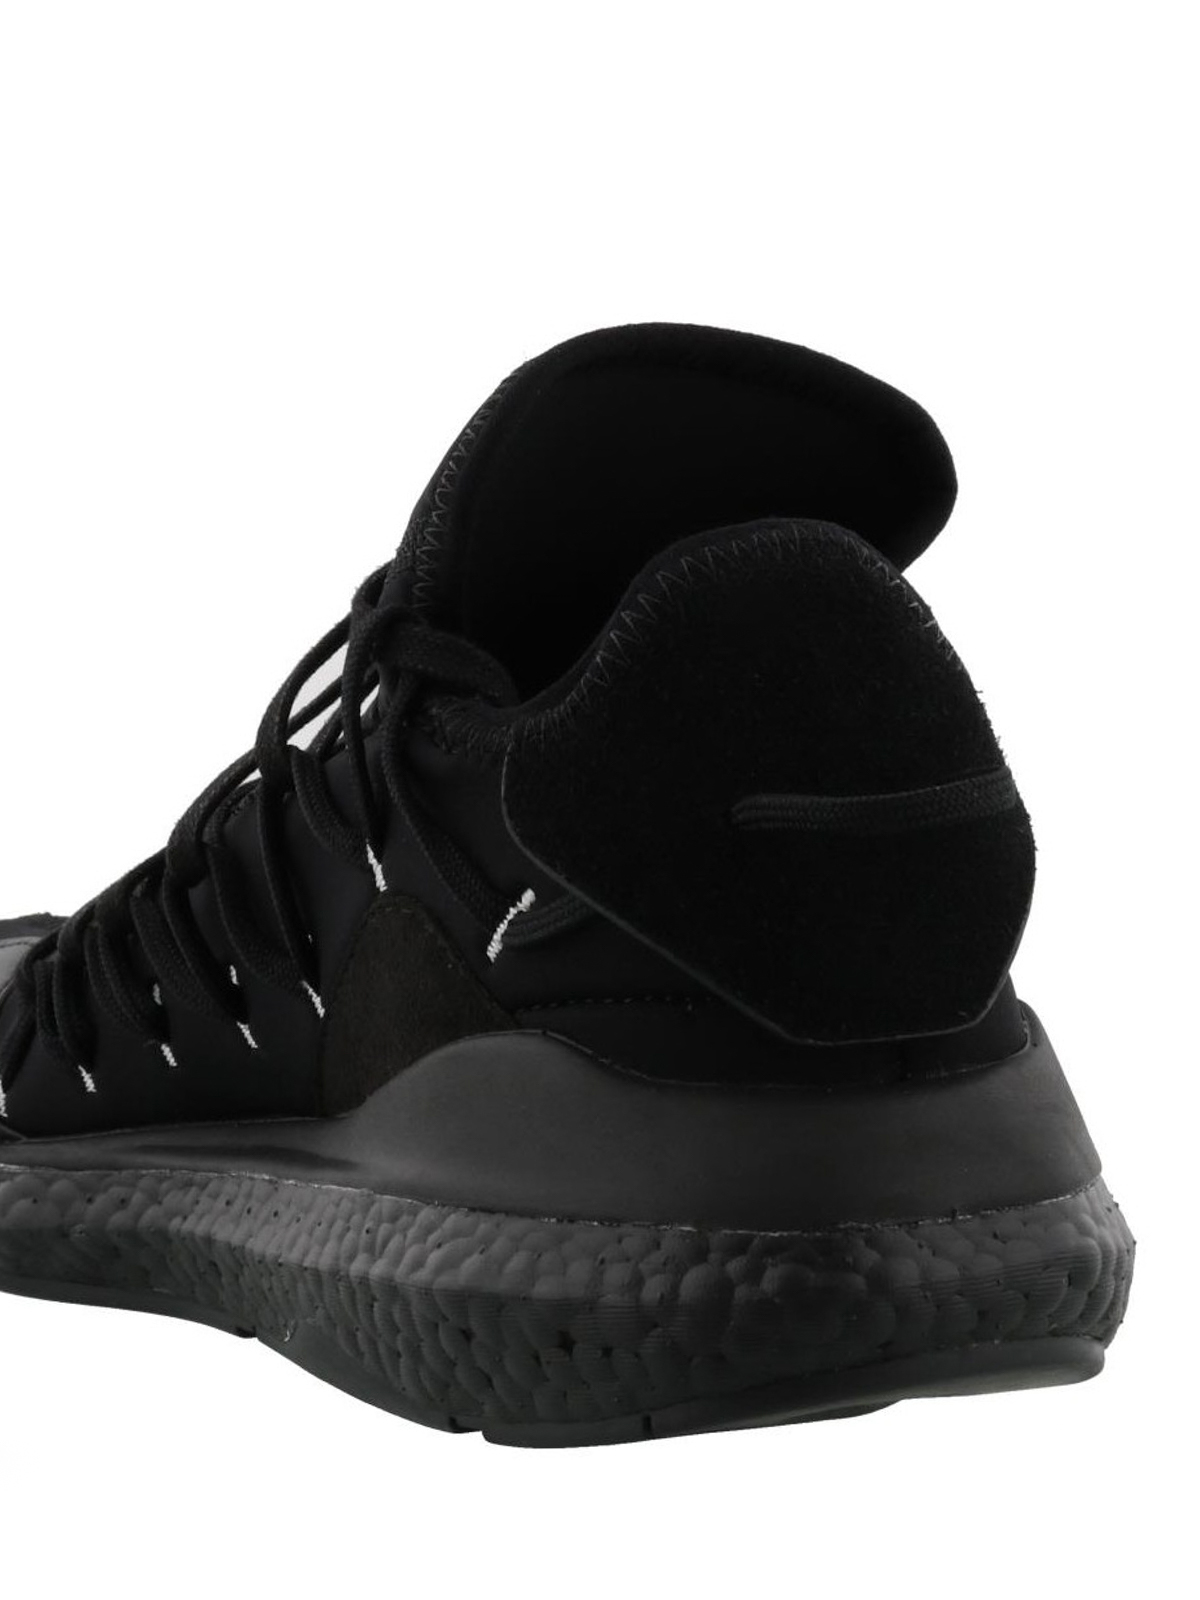 8b27bb5dfaf4 Adidas Y-3 - Kusari neoprene and leather sneakers - trainers - BC0955